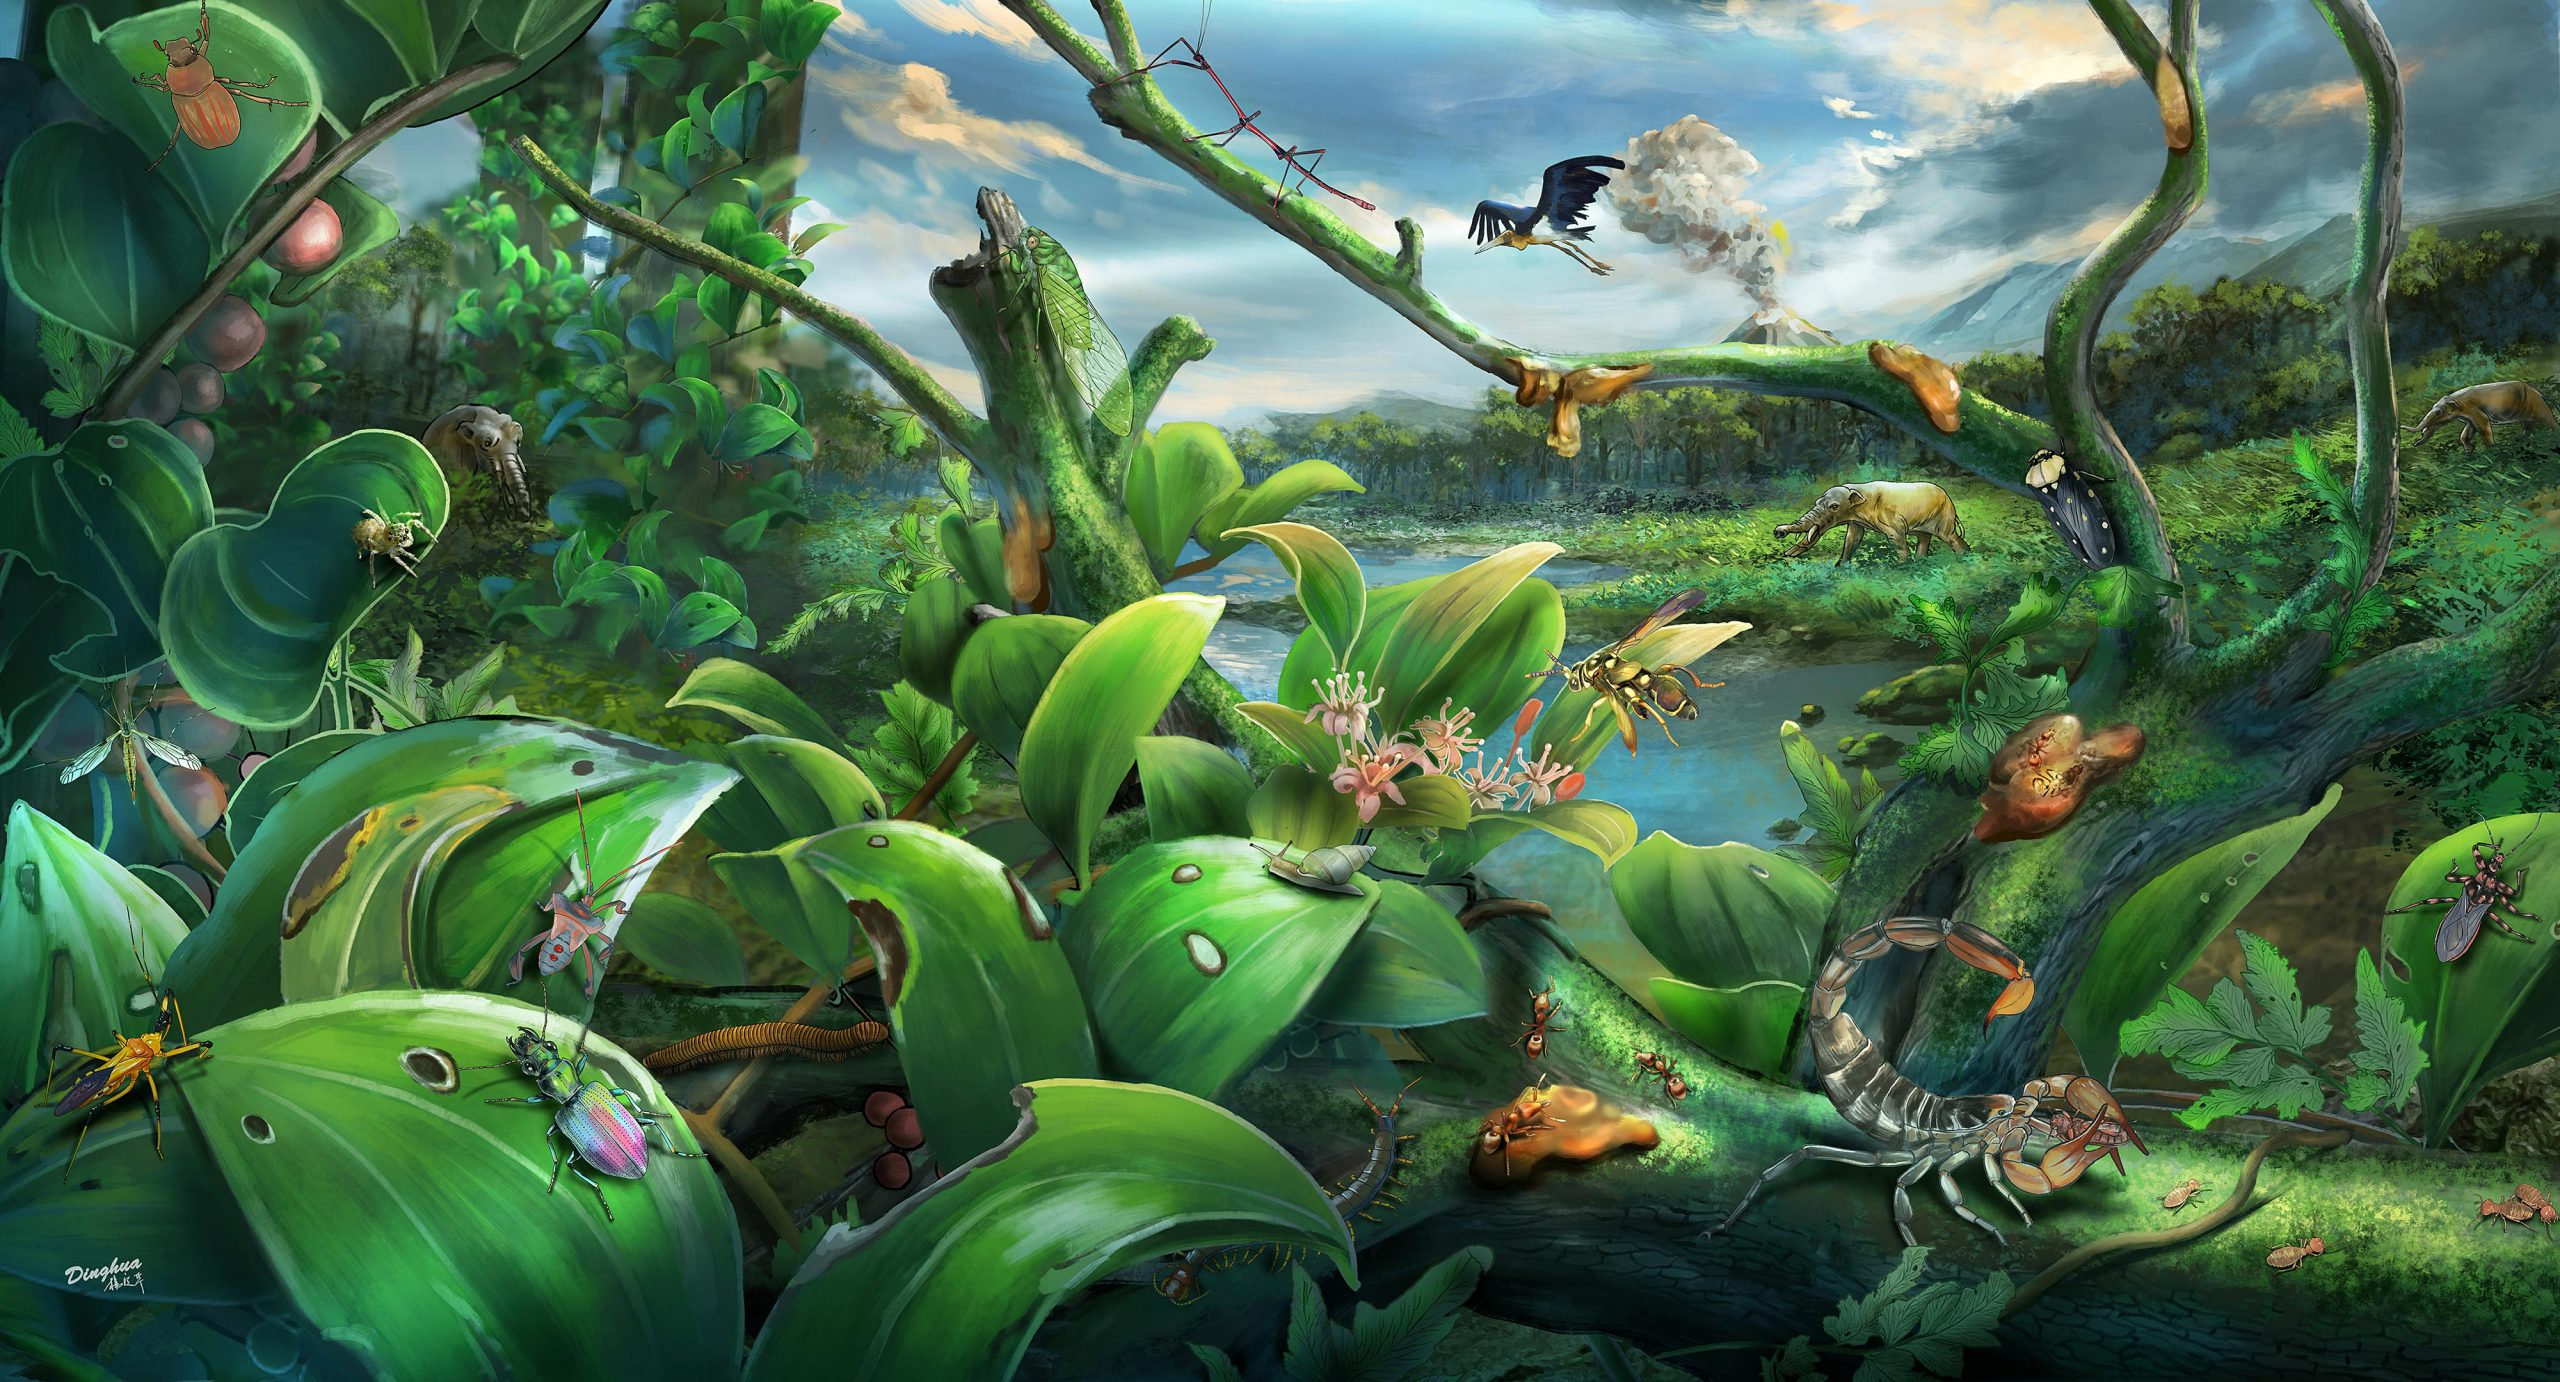 Extraordinary Species Diversity Within a 14.7 Million-Year-Old Tropical Rainforest and Sheds Light on Evolution